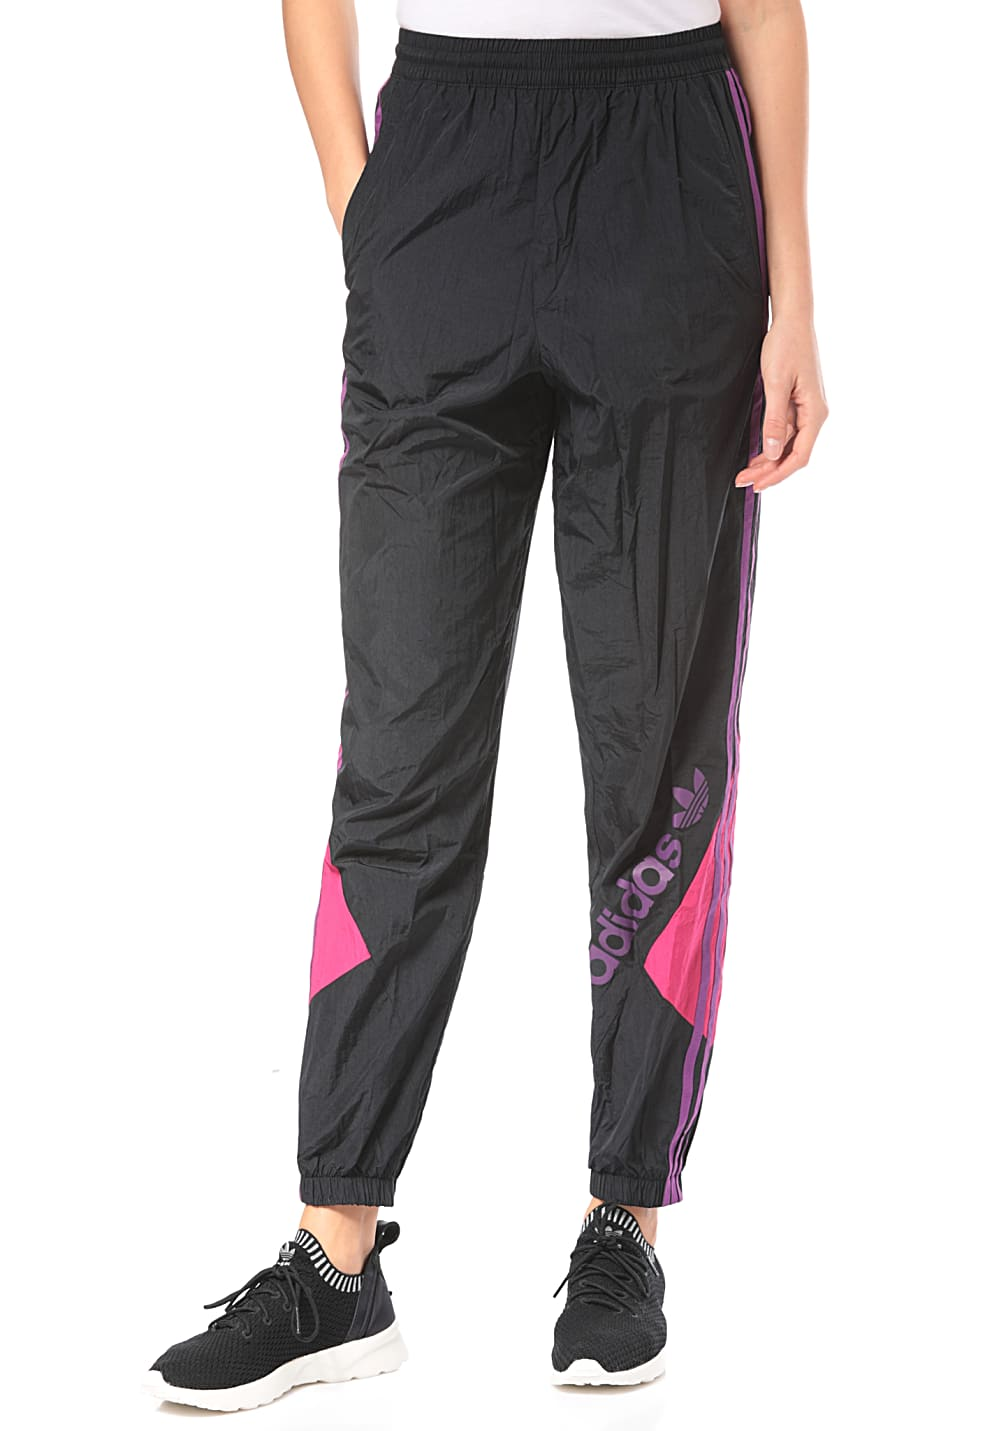 adidas Originals TP Lg Trainingshose für Damen Schwarz